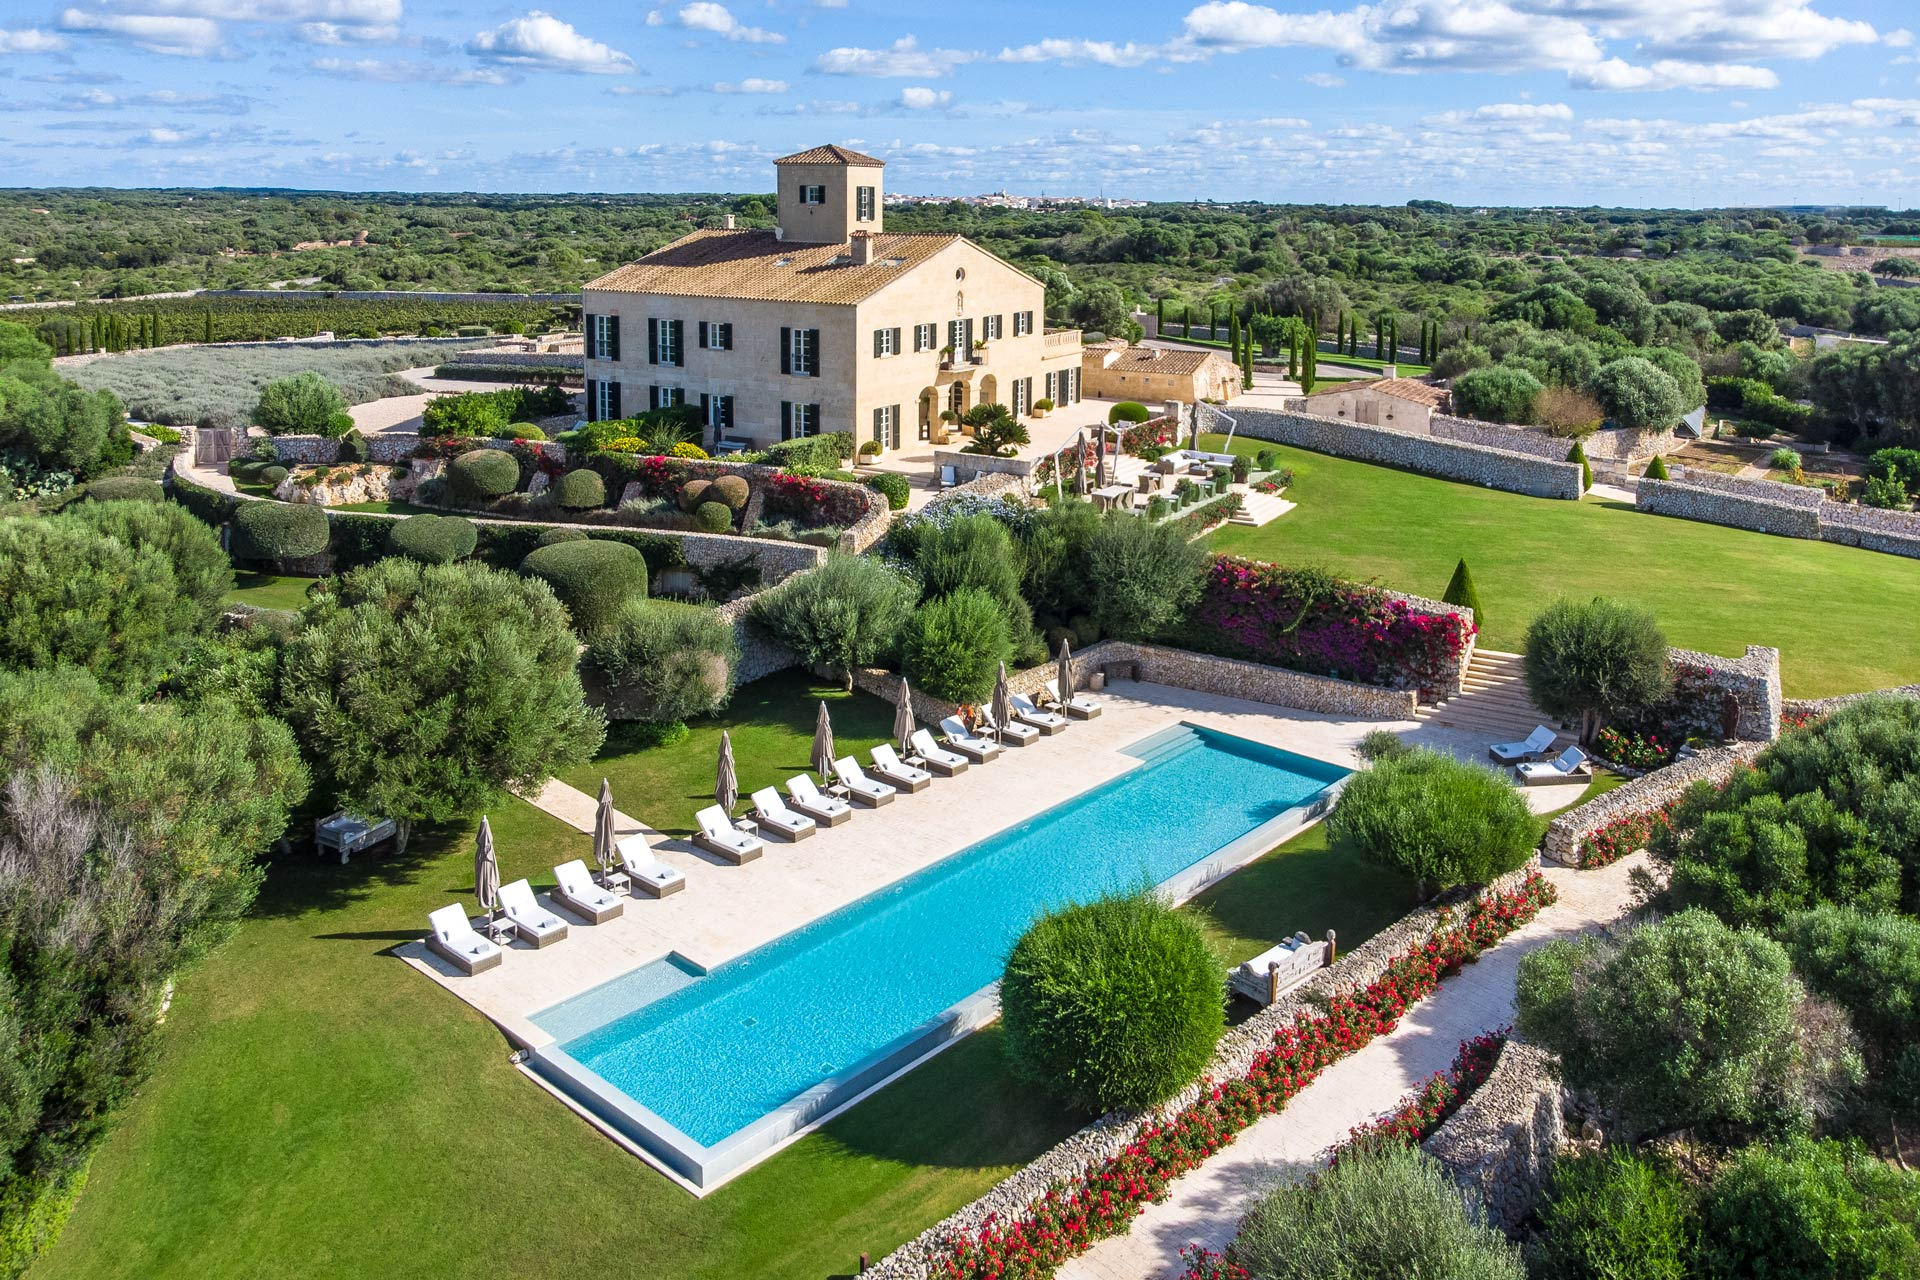 The most luxurious and exclusive hotel in Menorca